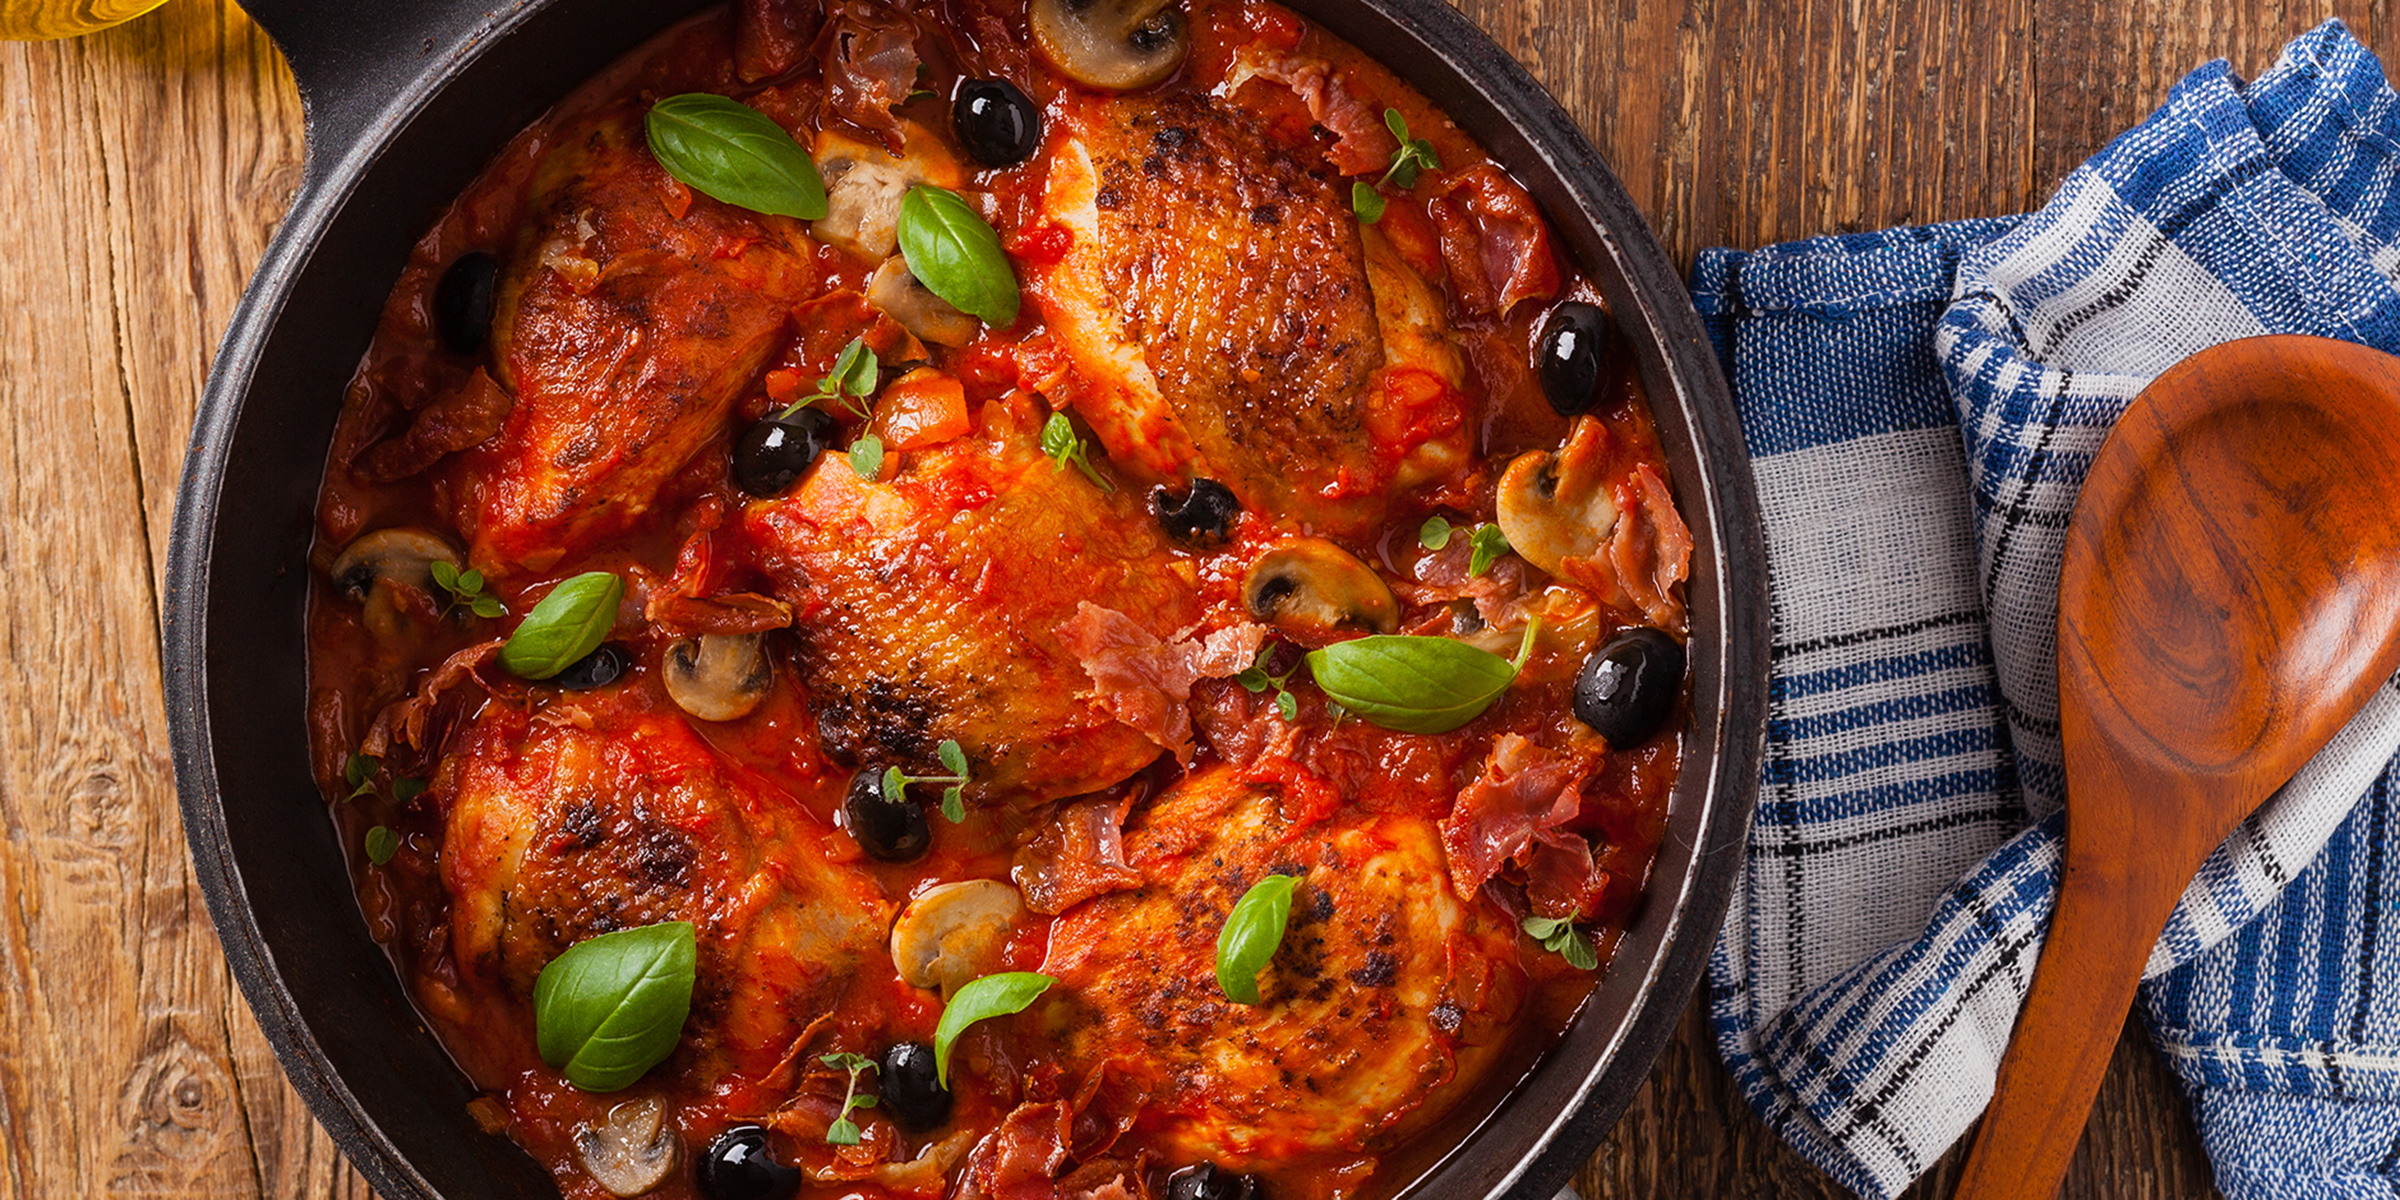 Valerie Bertinelli makes healthy chicken cacciatore in just one pan